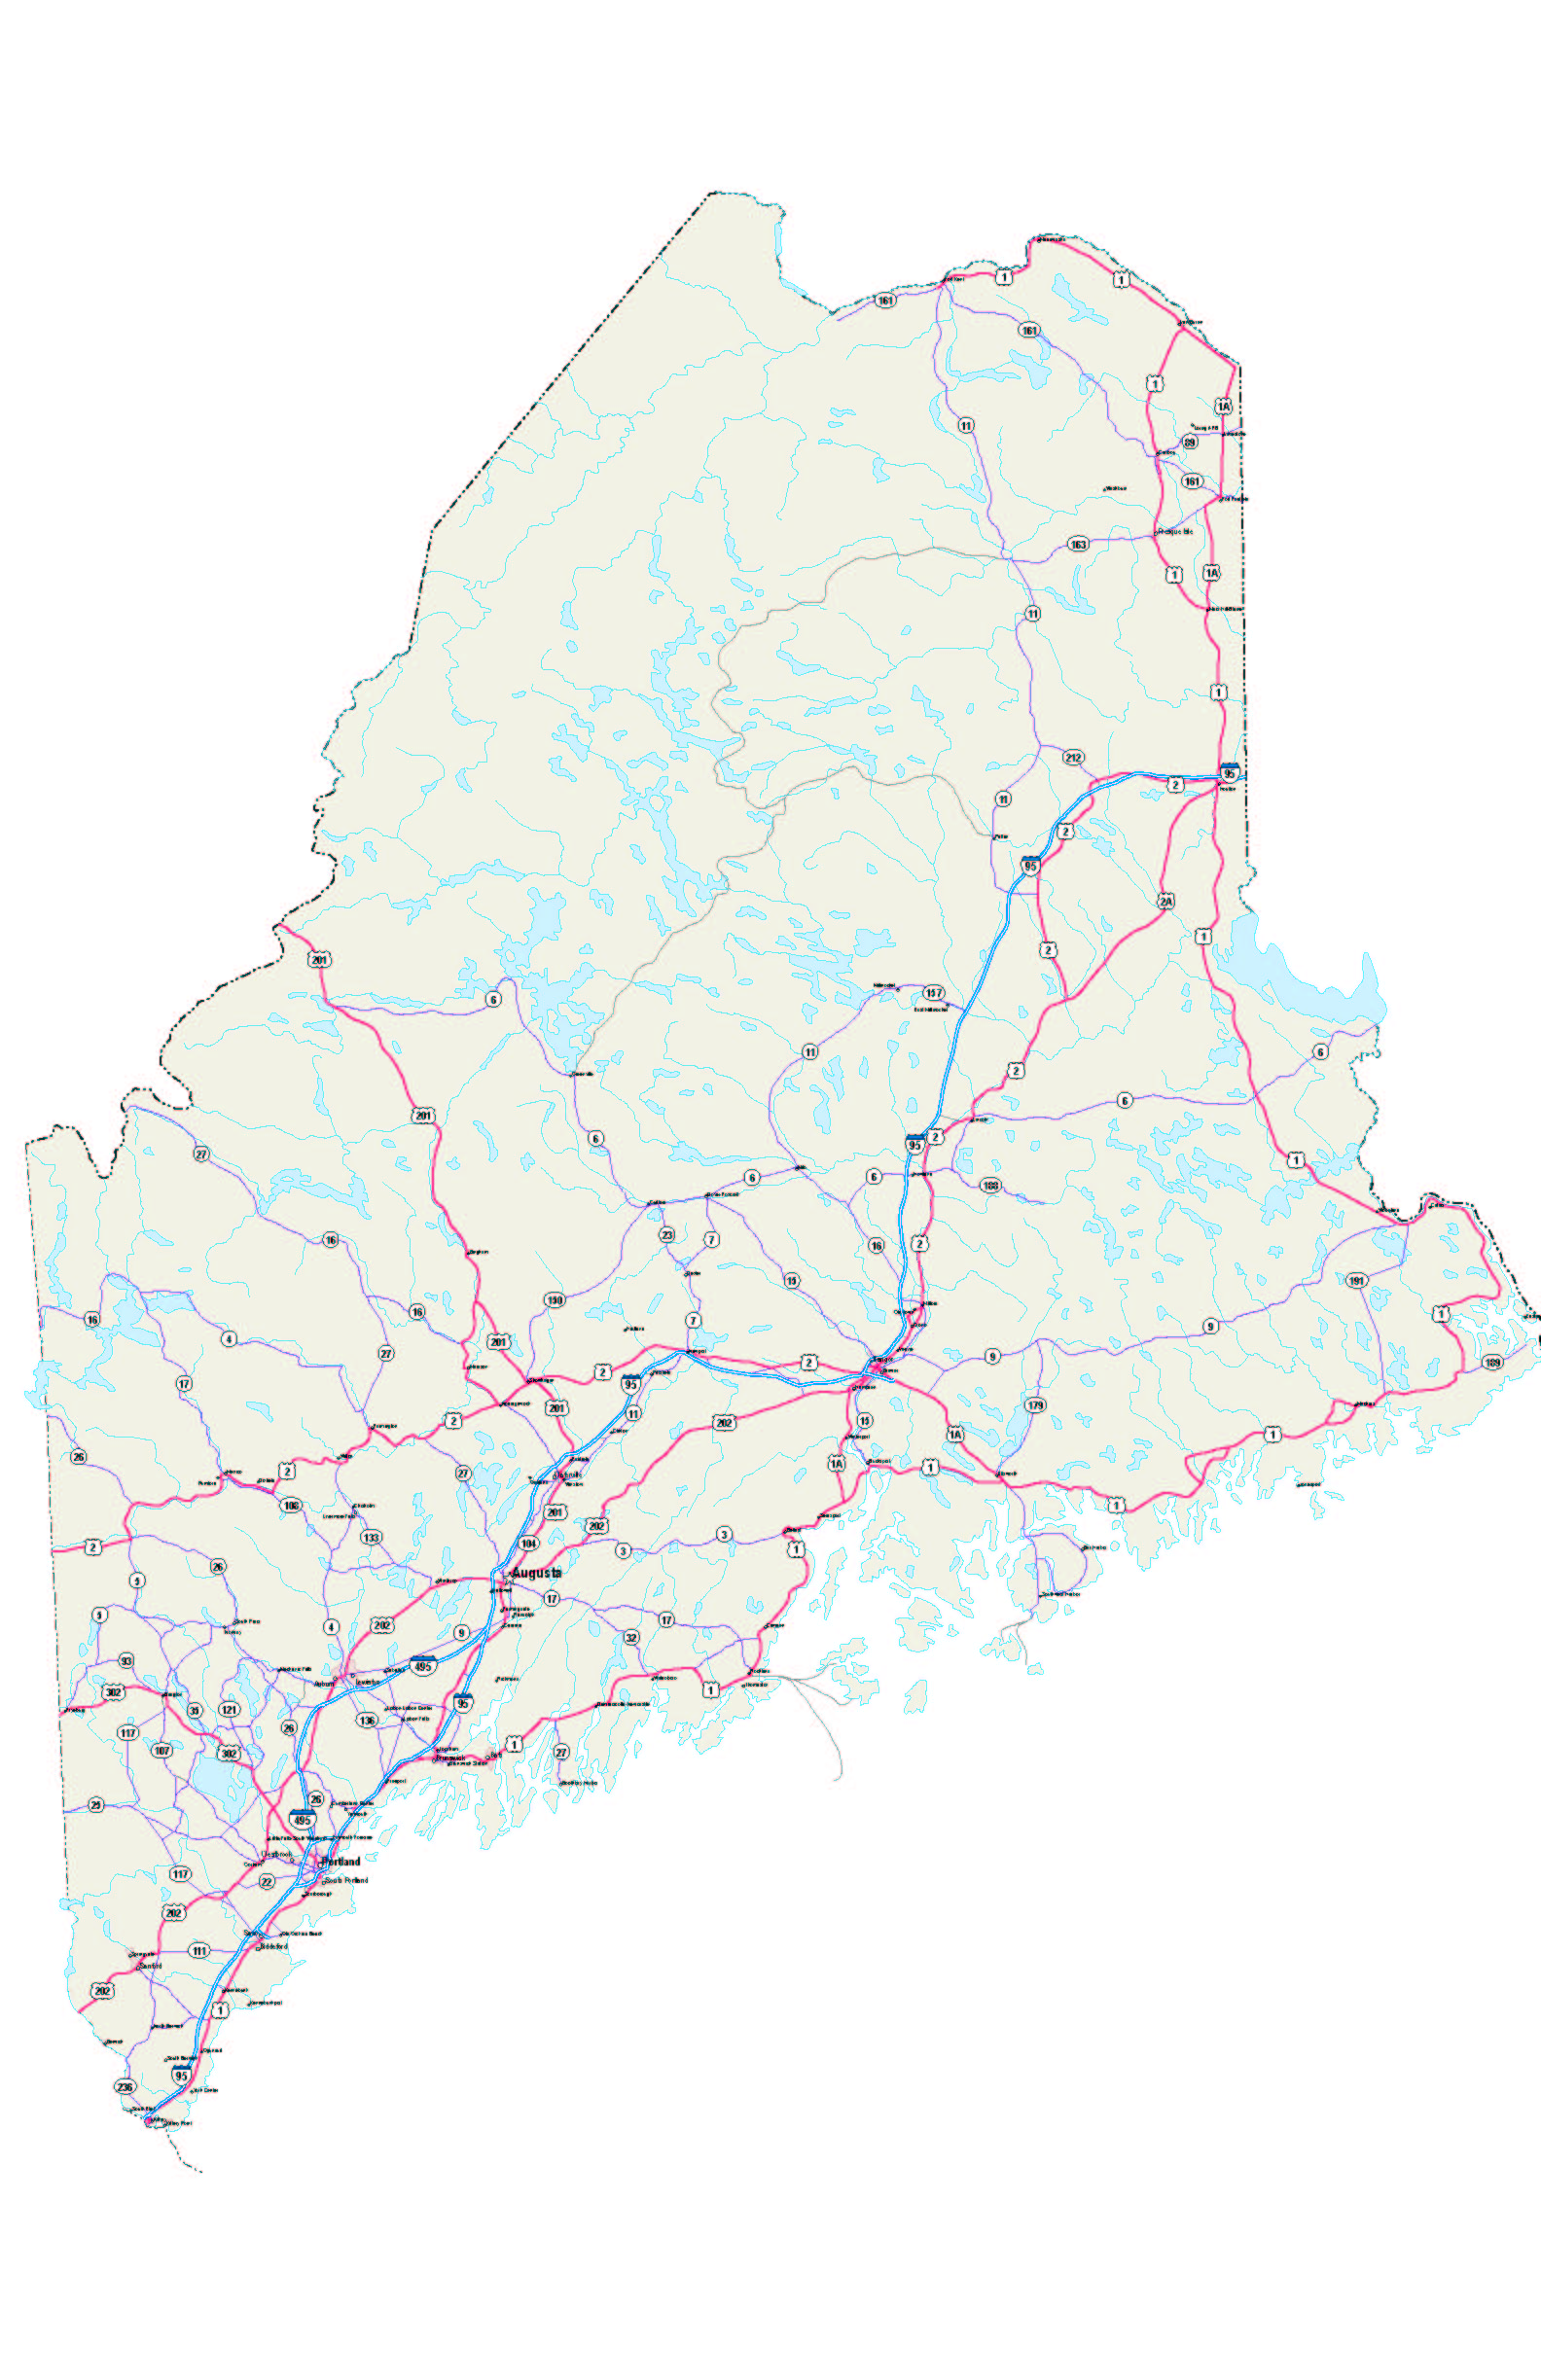 State Map Of Maine.Maine Map Maine Maps Maine Road Map Maine State Map